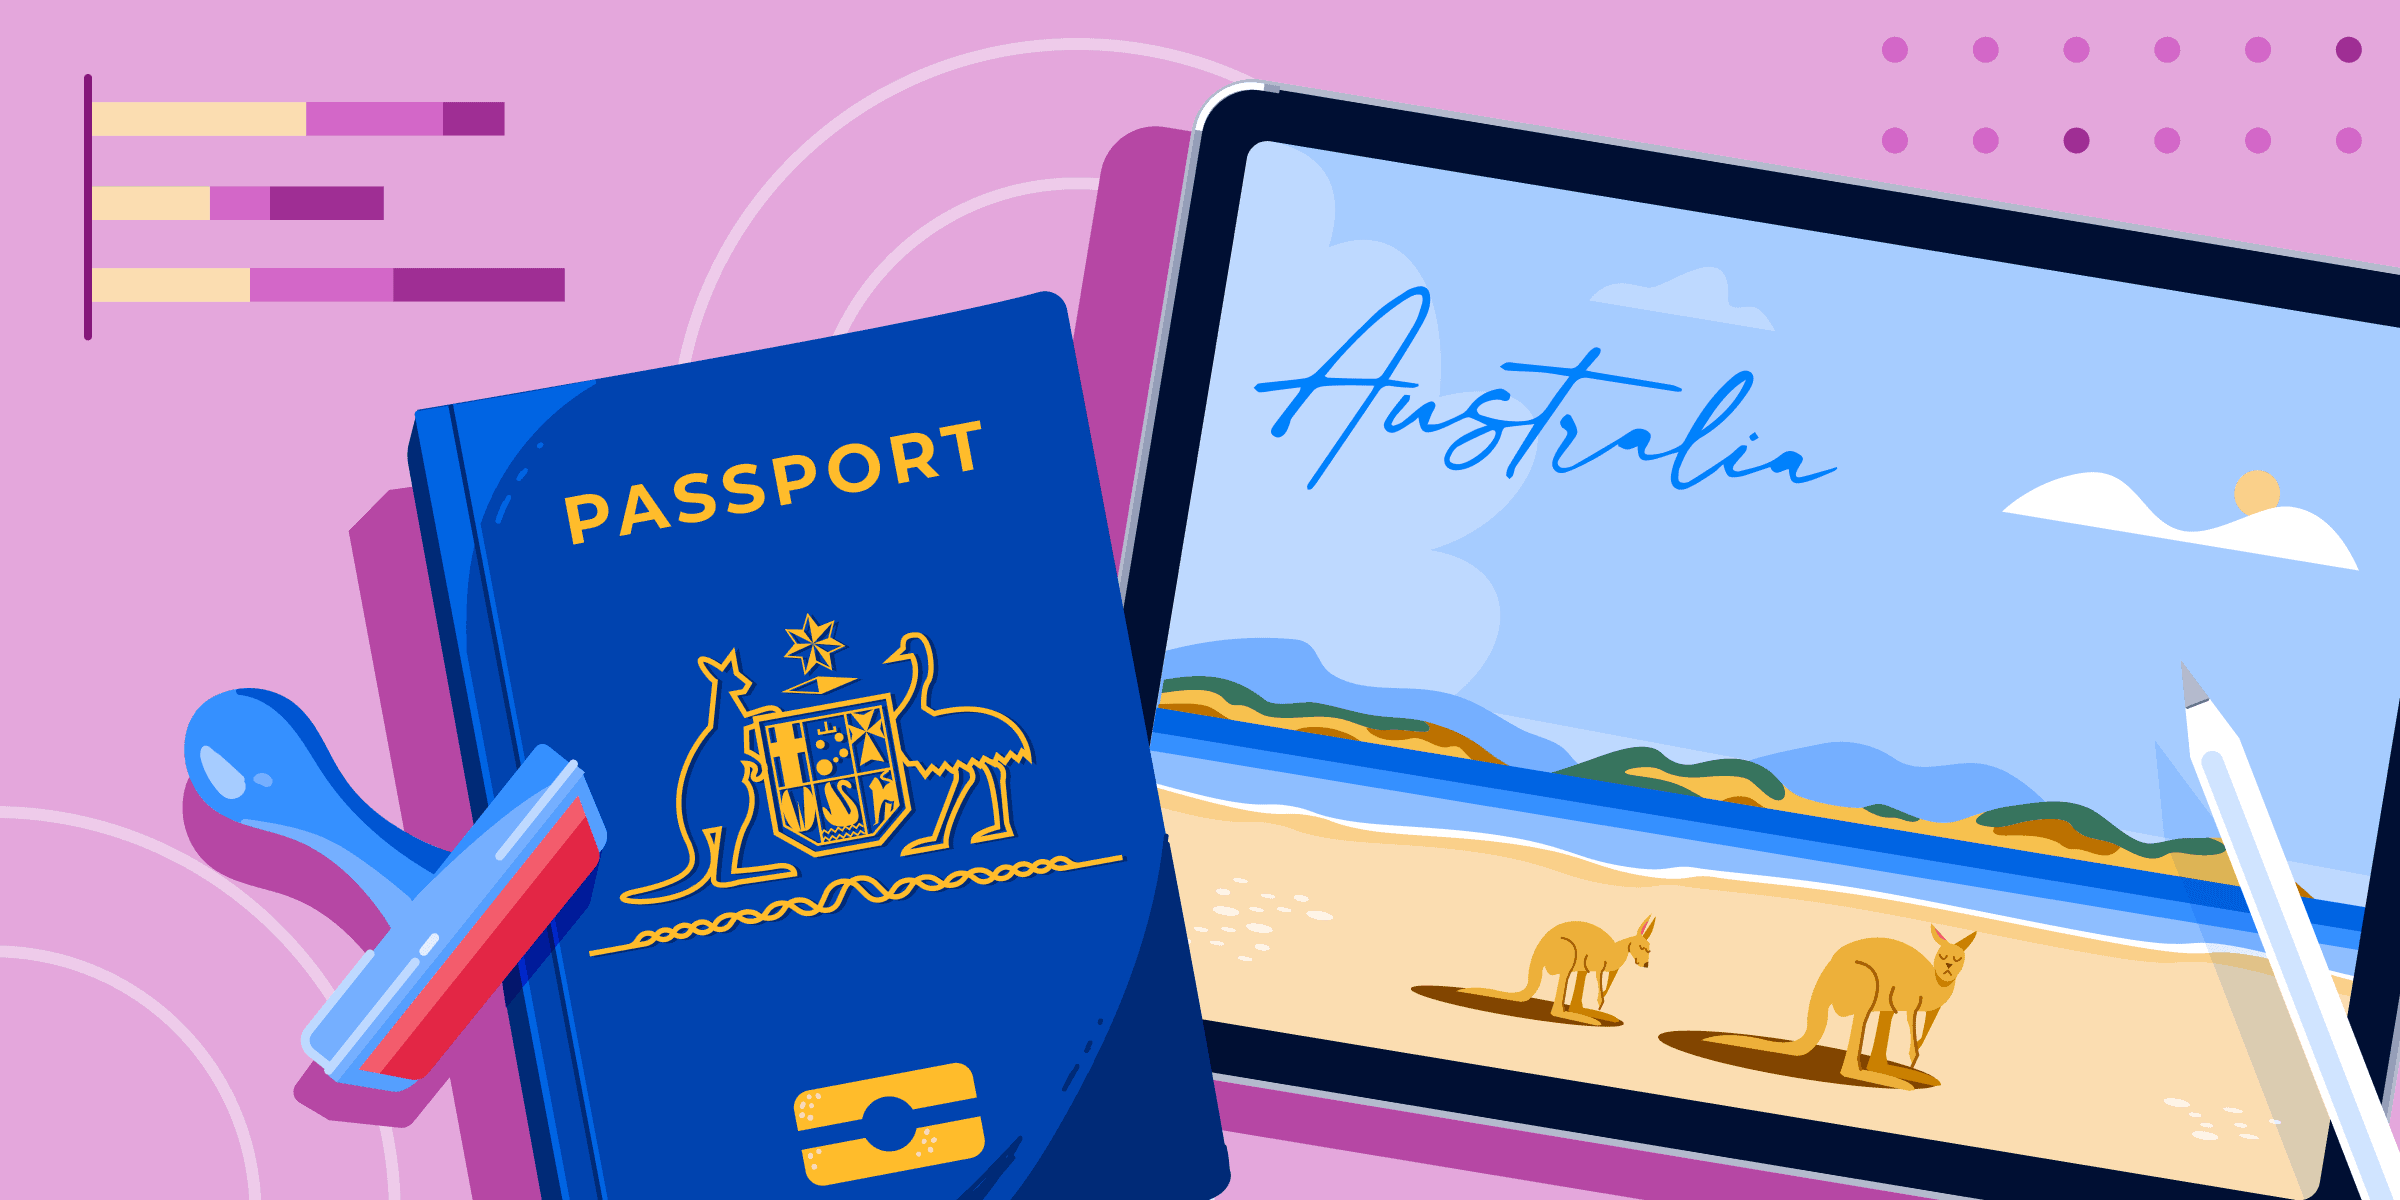 ApplyInsight: Predicting Post-Pandemic Visa Trends for Australian International Education banner featuring a passport, a stamp, and a postcard of Australia